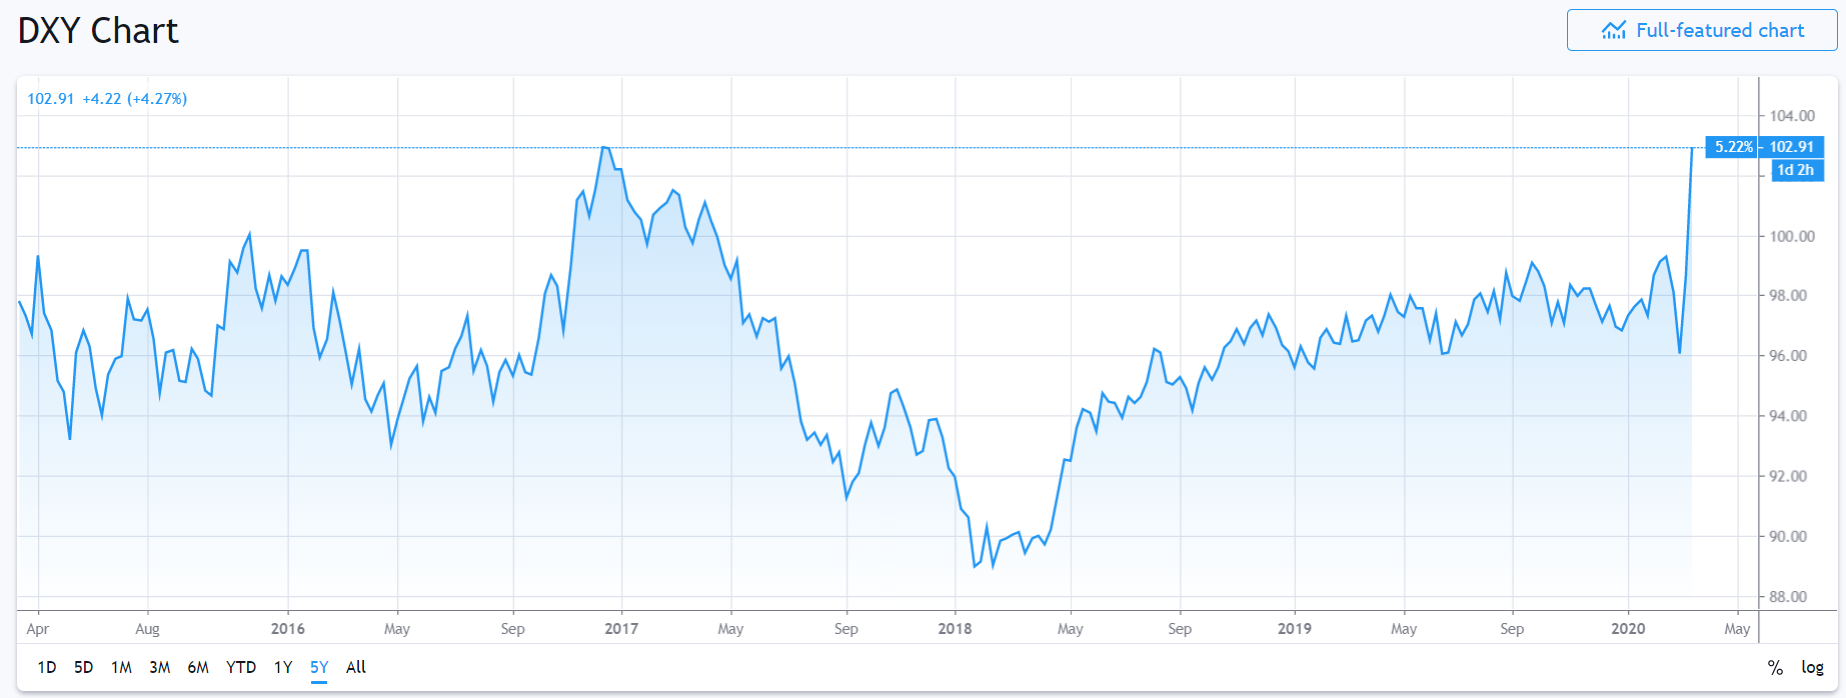 DXY - Dollar Index 5 Y Chart - Trading View - 20 March 2020